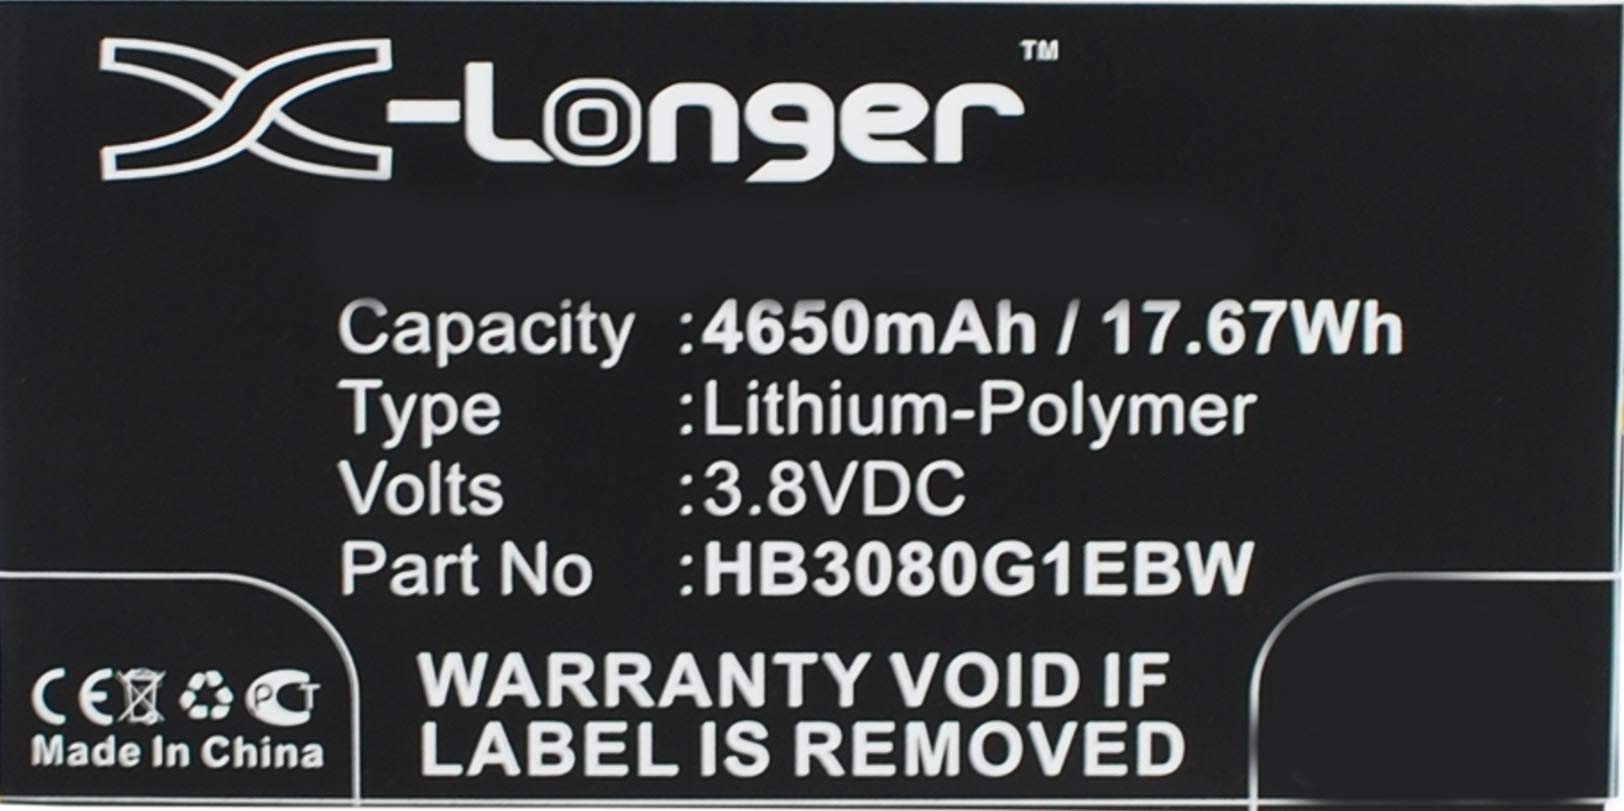 Synergy Digital Battery Compatible with Huawei S8-306L Tablet Battery (Li-Pol, 3.8V, 4650 mAh) - Repl. Huawei HB3080G1EBC Battery